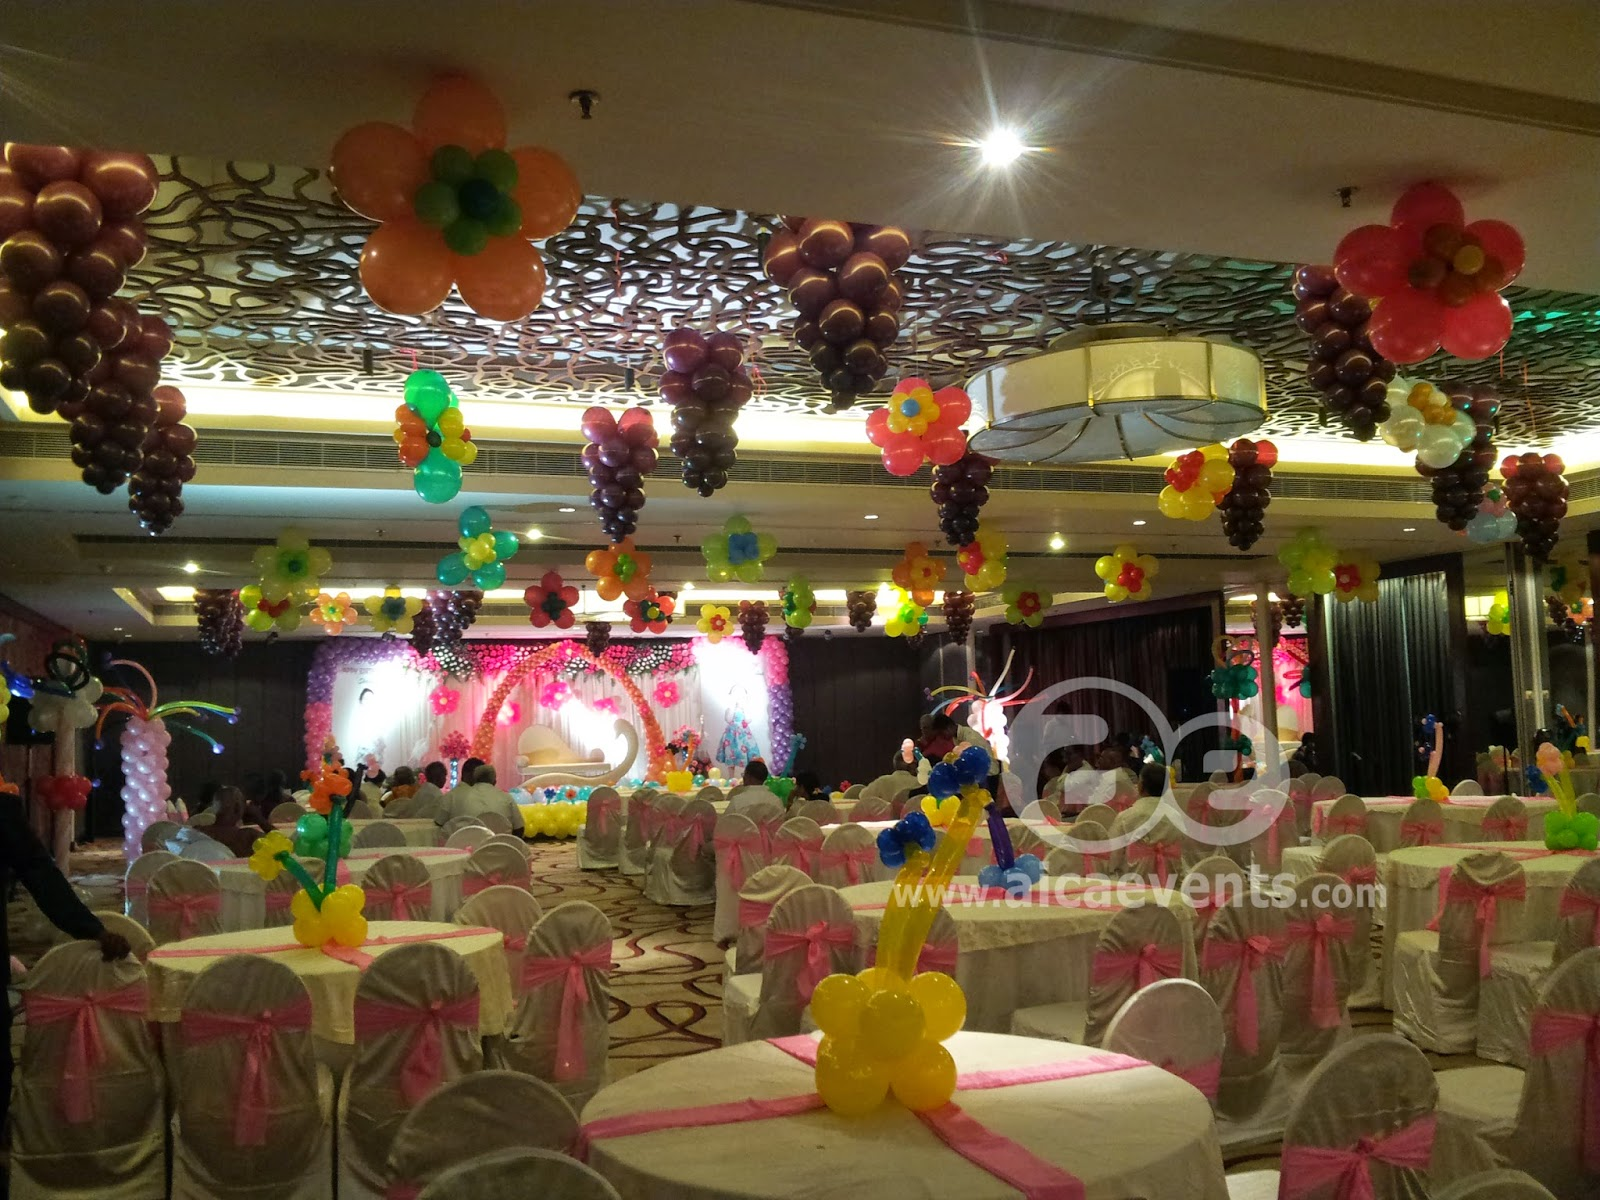 Aicaevents balloon decorations for birthday parties for Balloon decoration for ceiling